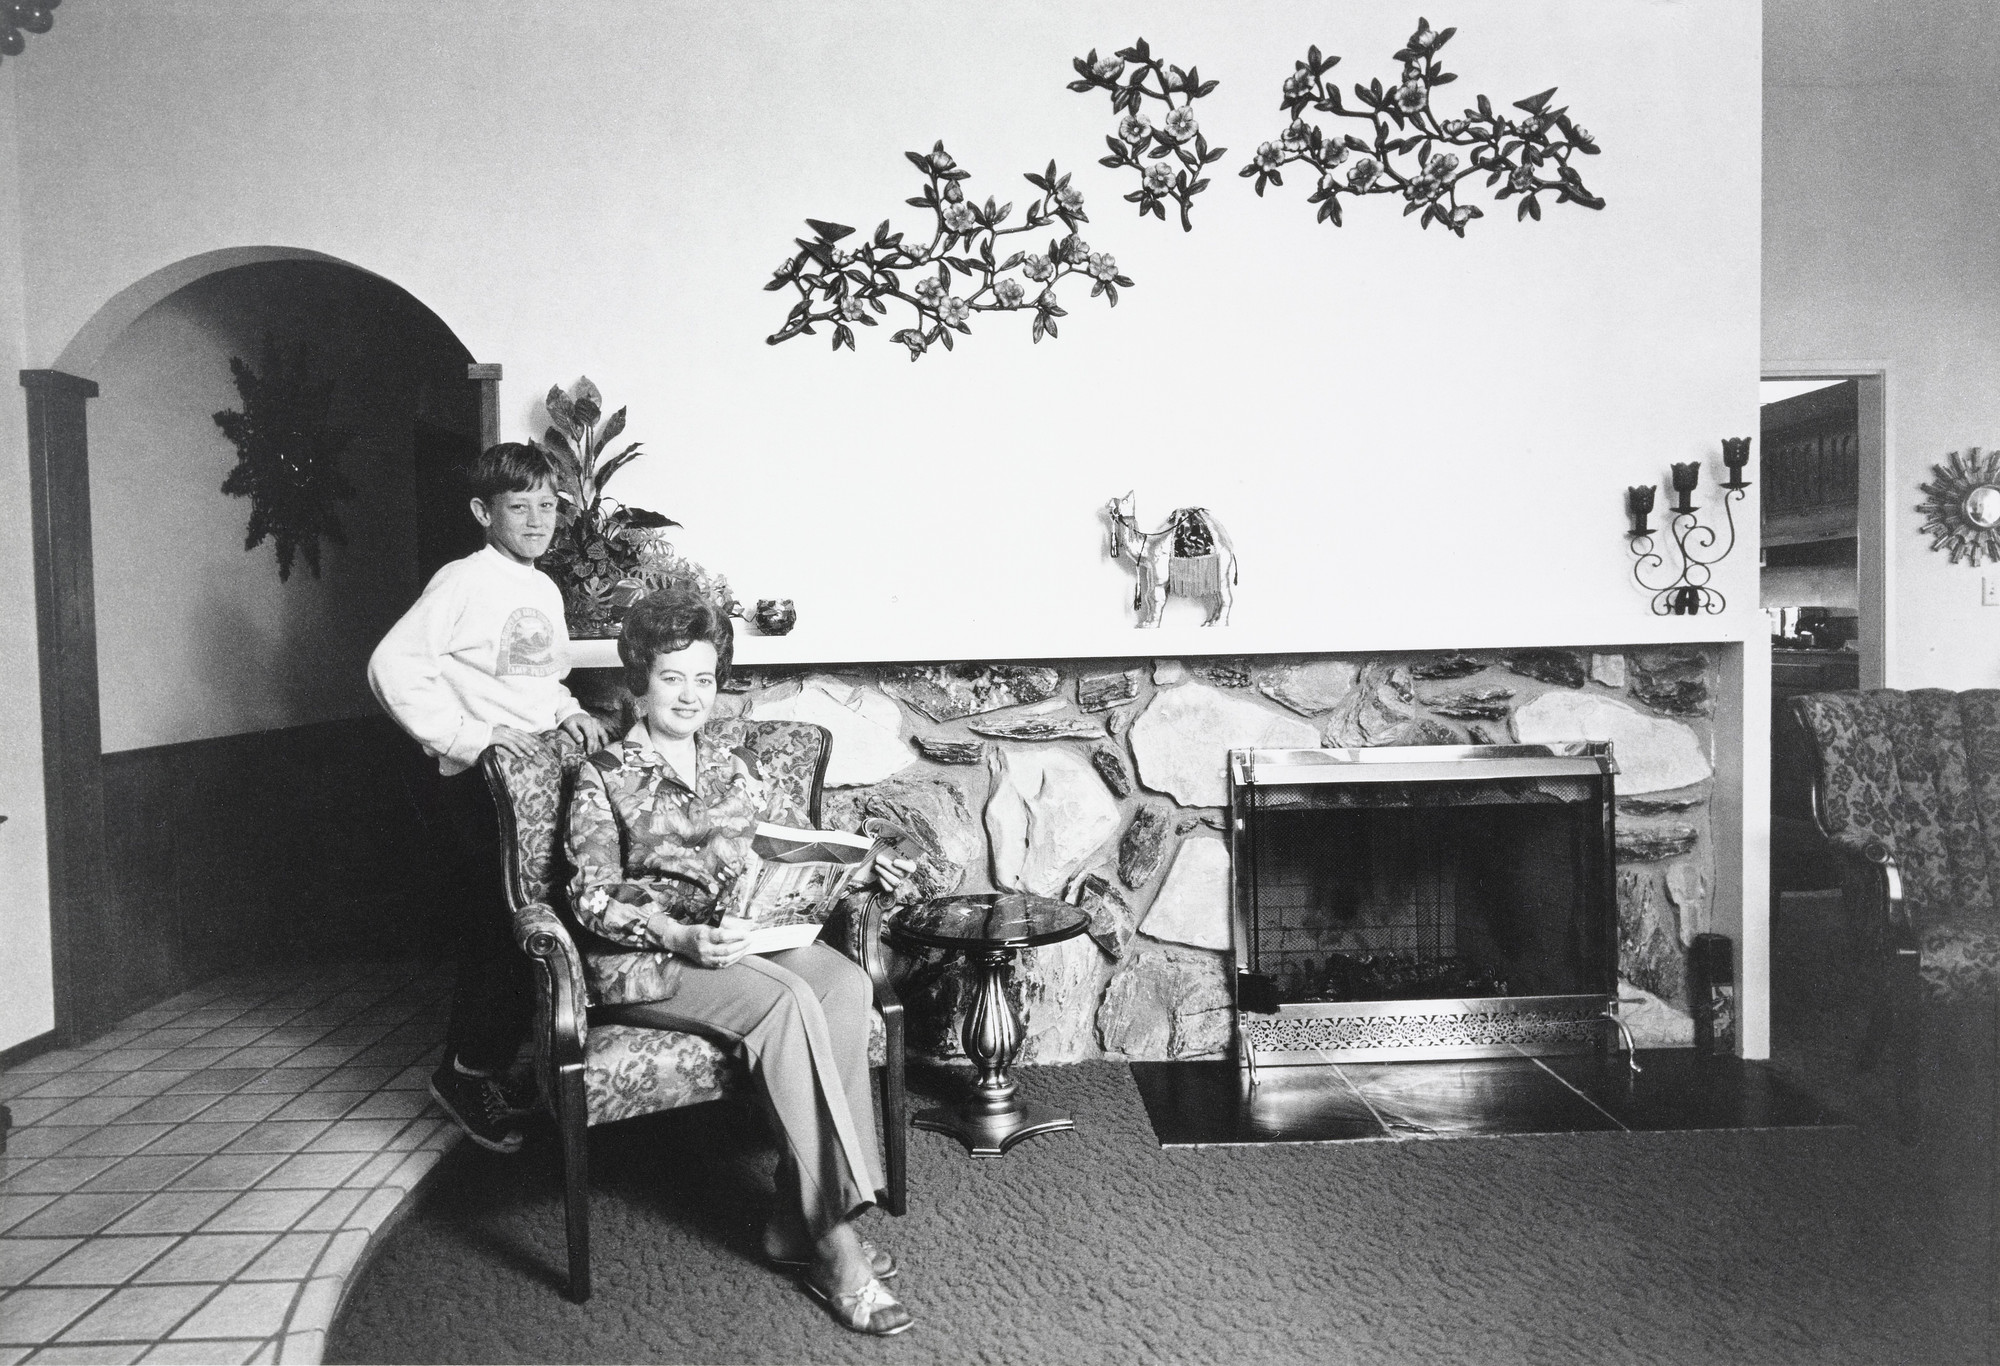 Bill Owens. I get a lot of compliments on the front room wall. I like Italian Syrocco floral designs over the mantle. It goes with the Palos Verde rock fireplace.. 1972